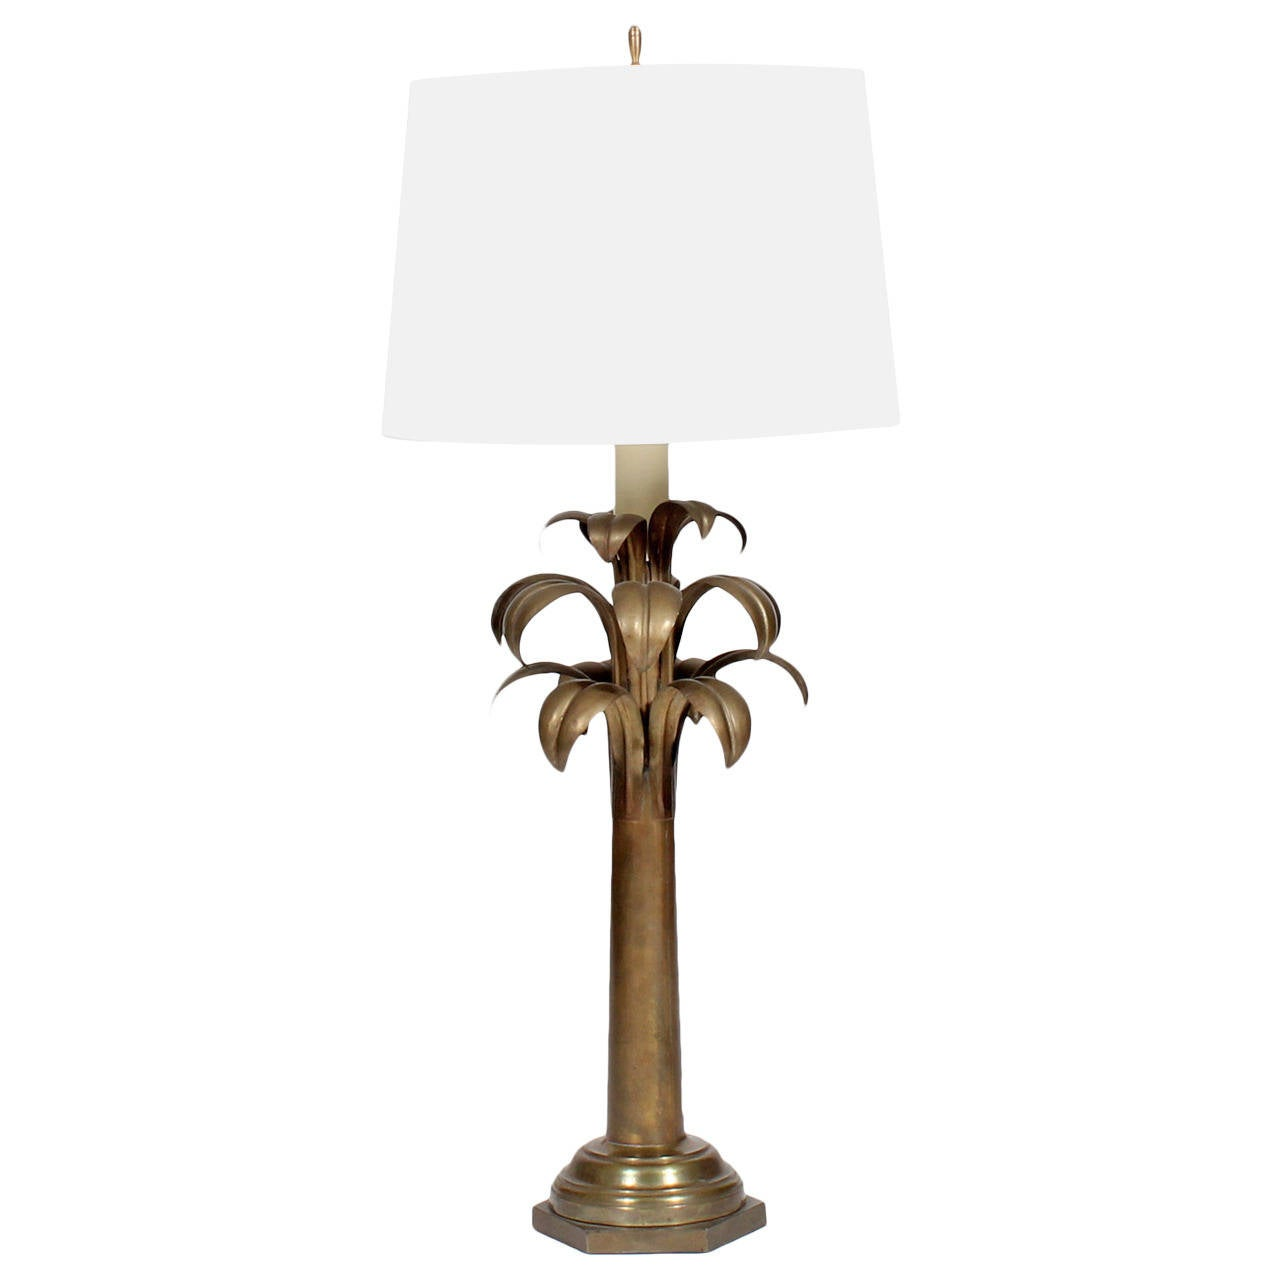 Tall brass stylized palm tree lamp at 1stdibs for Tall tree floor lamp